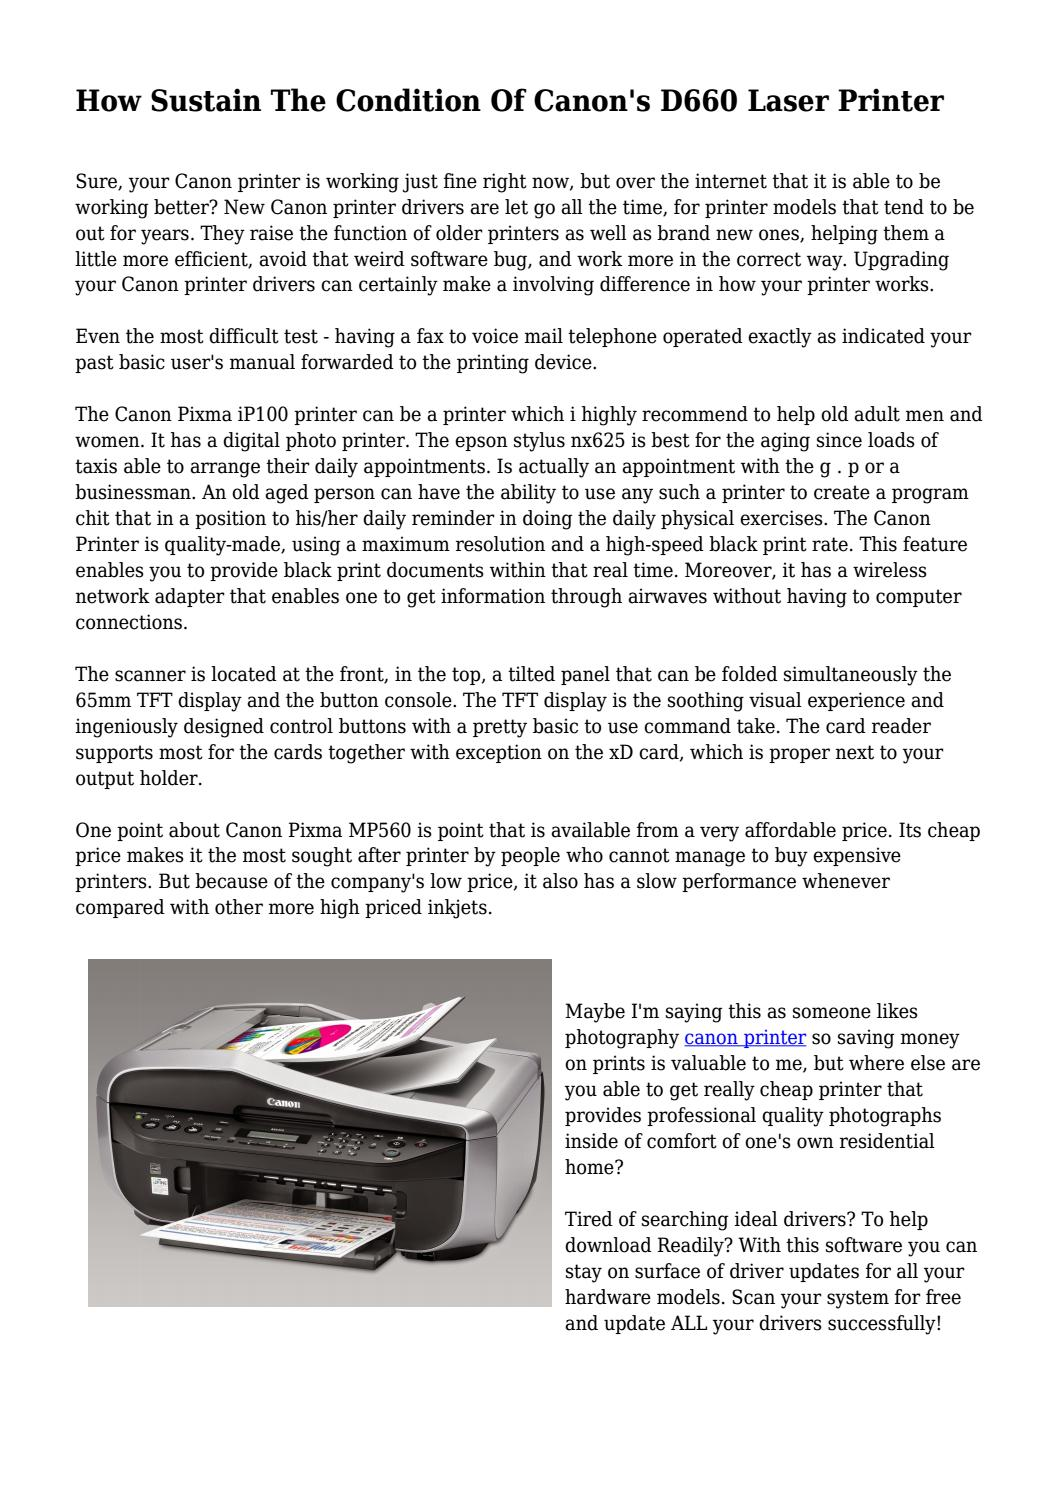 How Sustain The Condition Of Canon's D660 Laser Printer